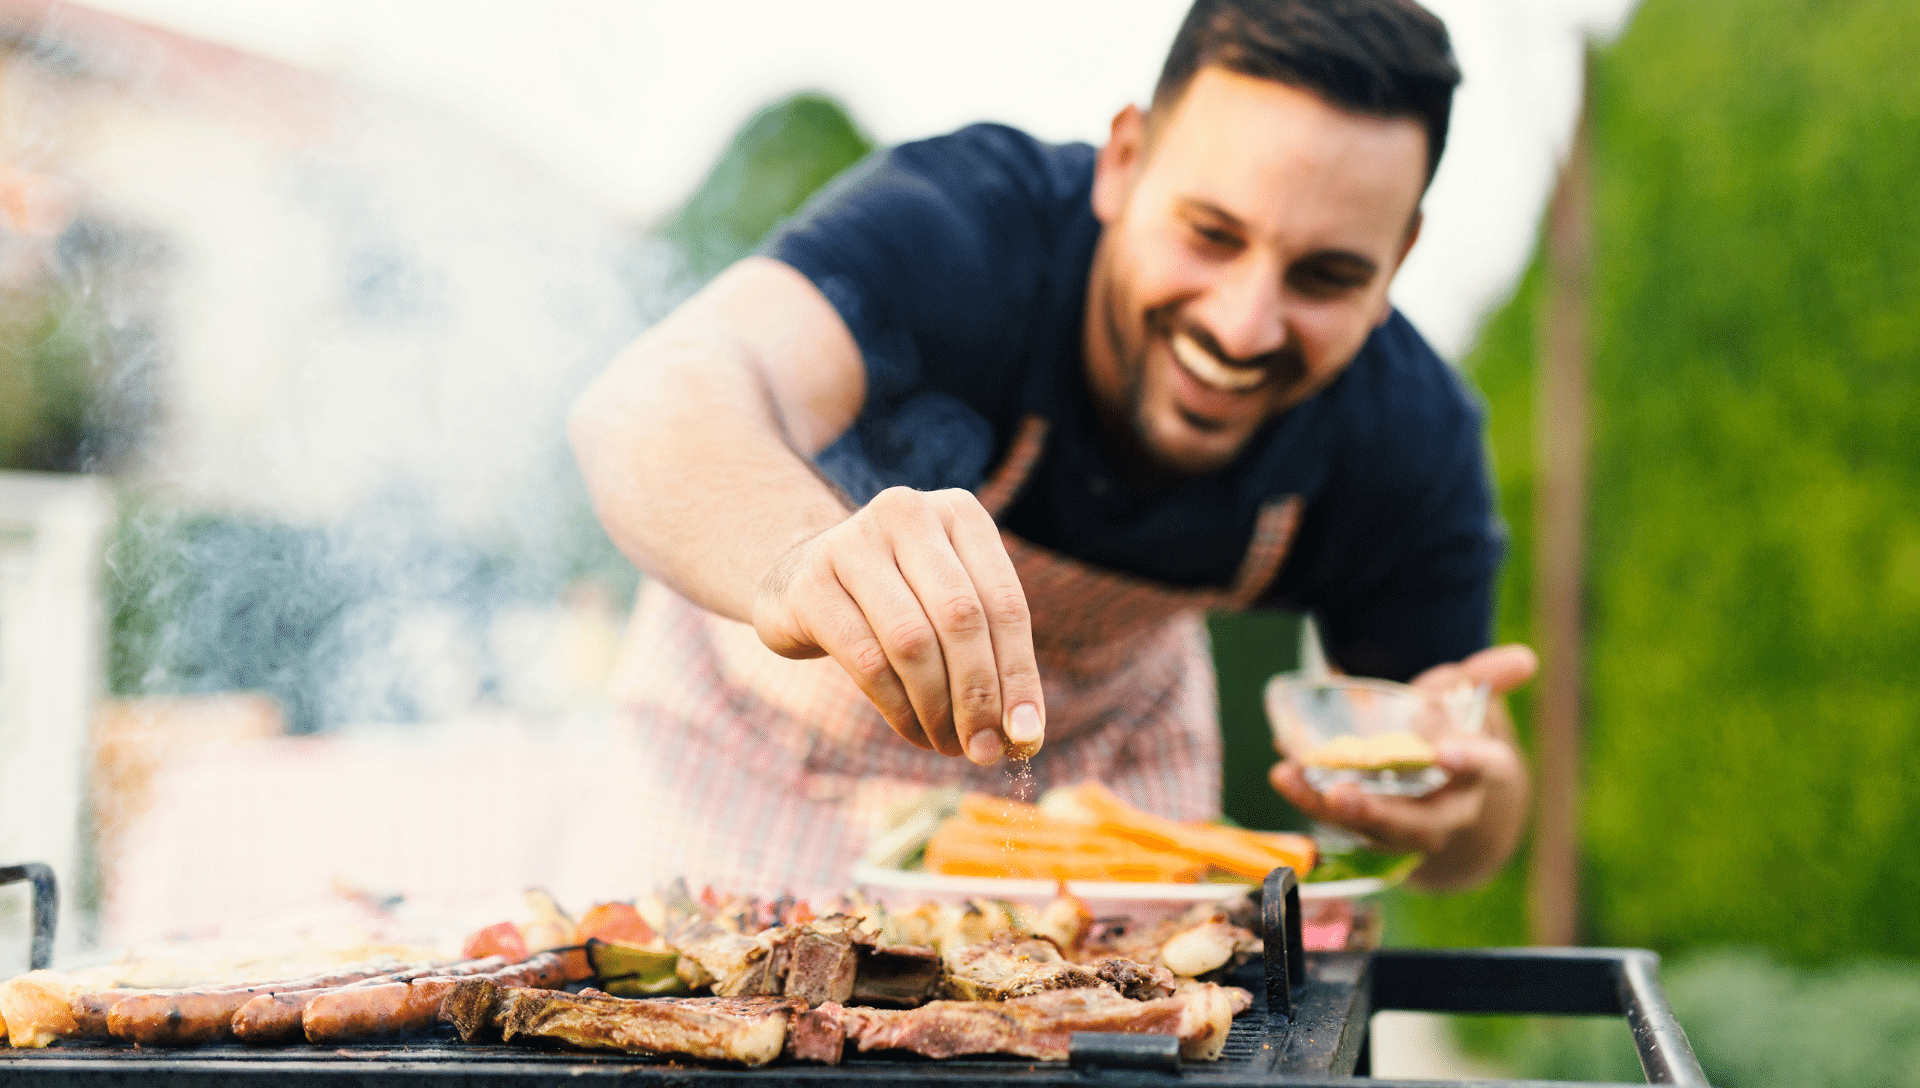 A smiling man leans over the grill as he adds seasoning to his food. Smoke is coming up from the grill.